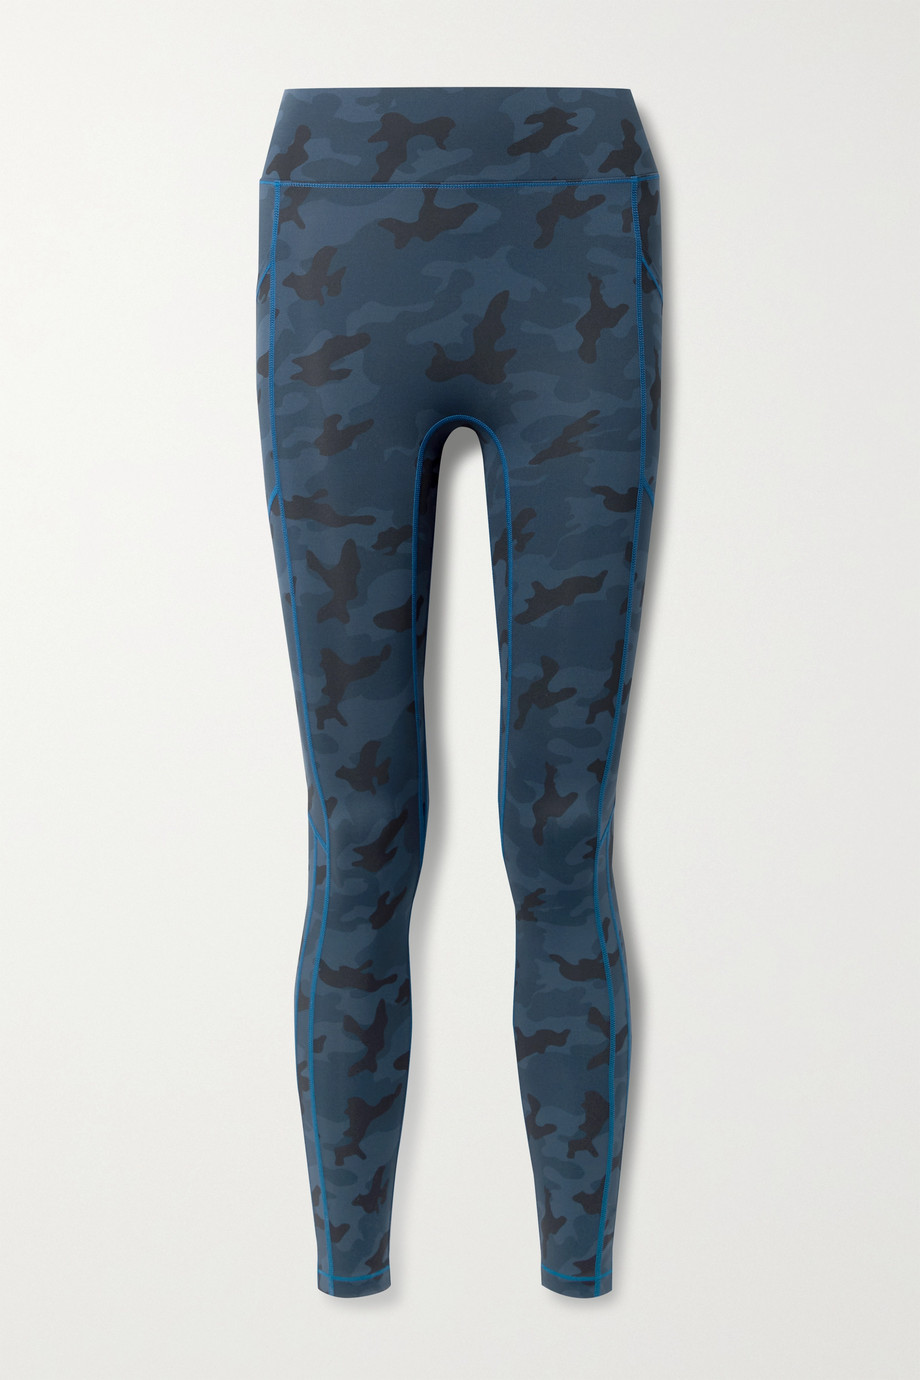 All Access Center Stage camouflage-print stretch leggings